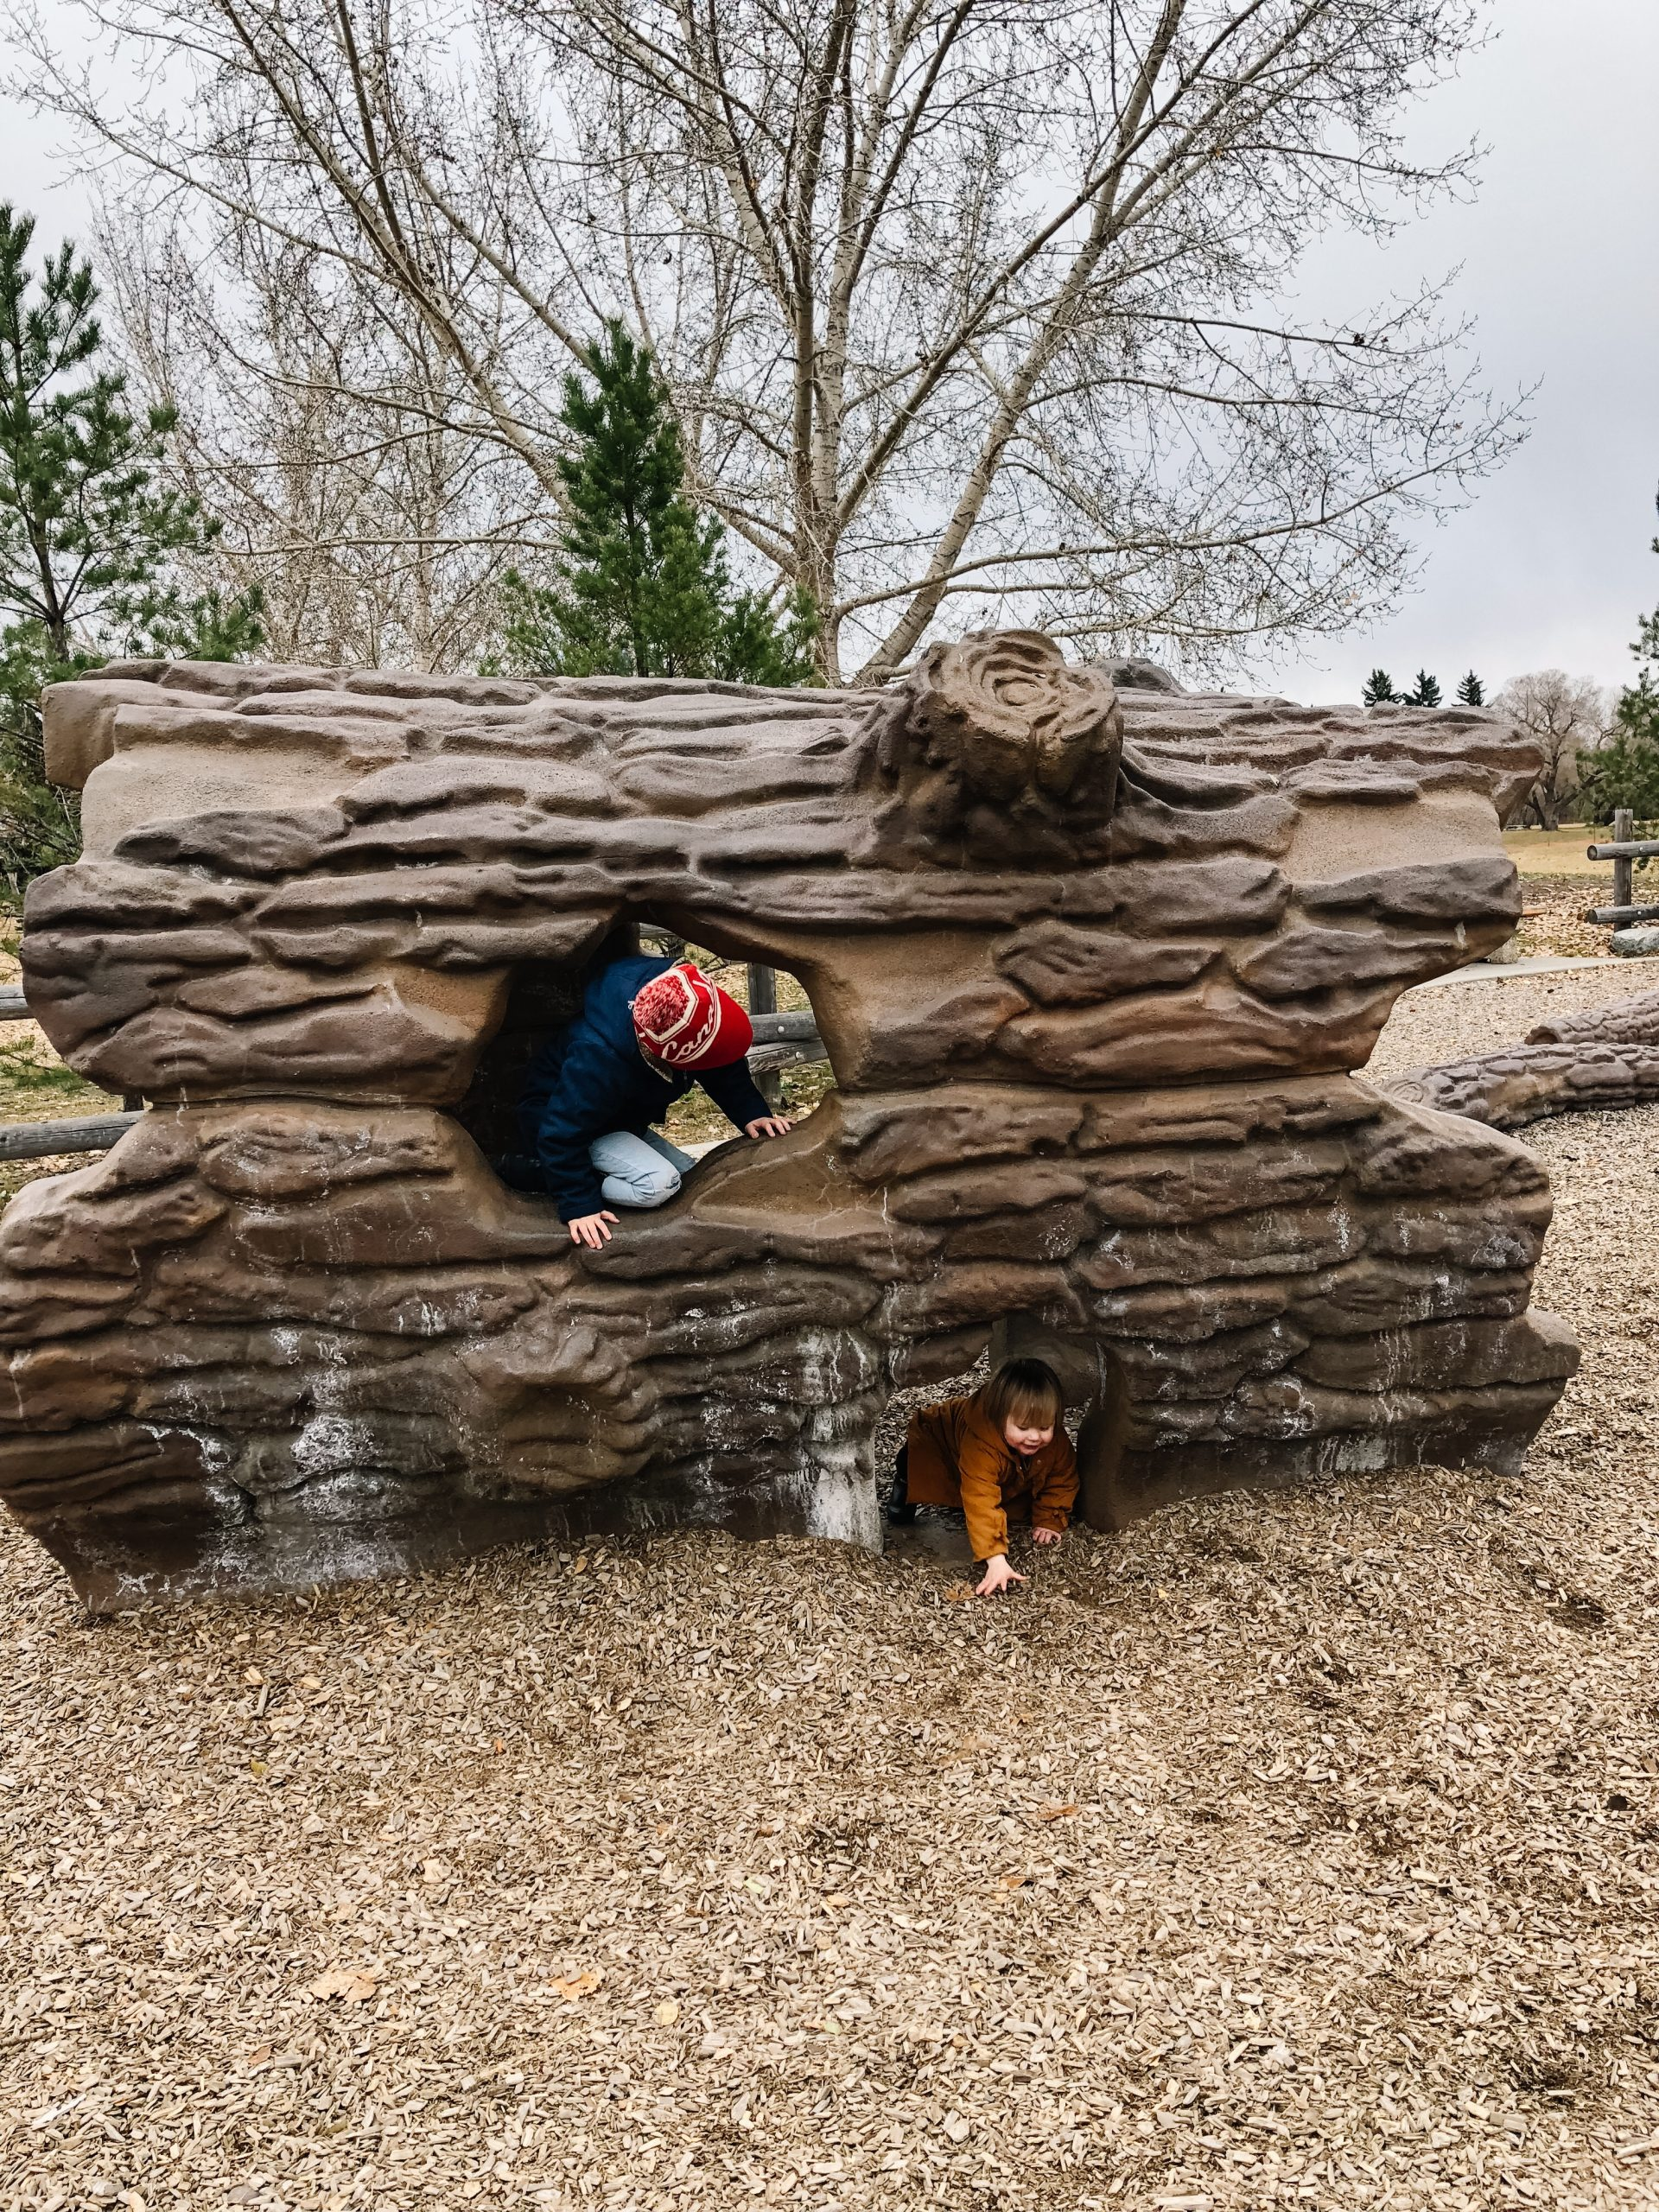 Two siblings play on a large tree trunk, one child has a confirmed ASD diagnosis